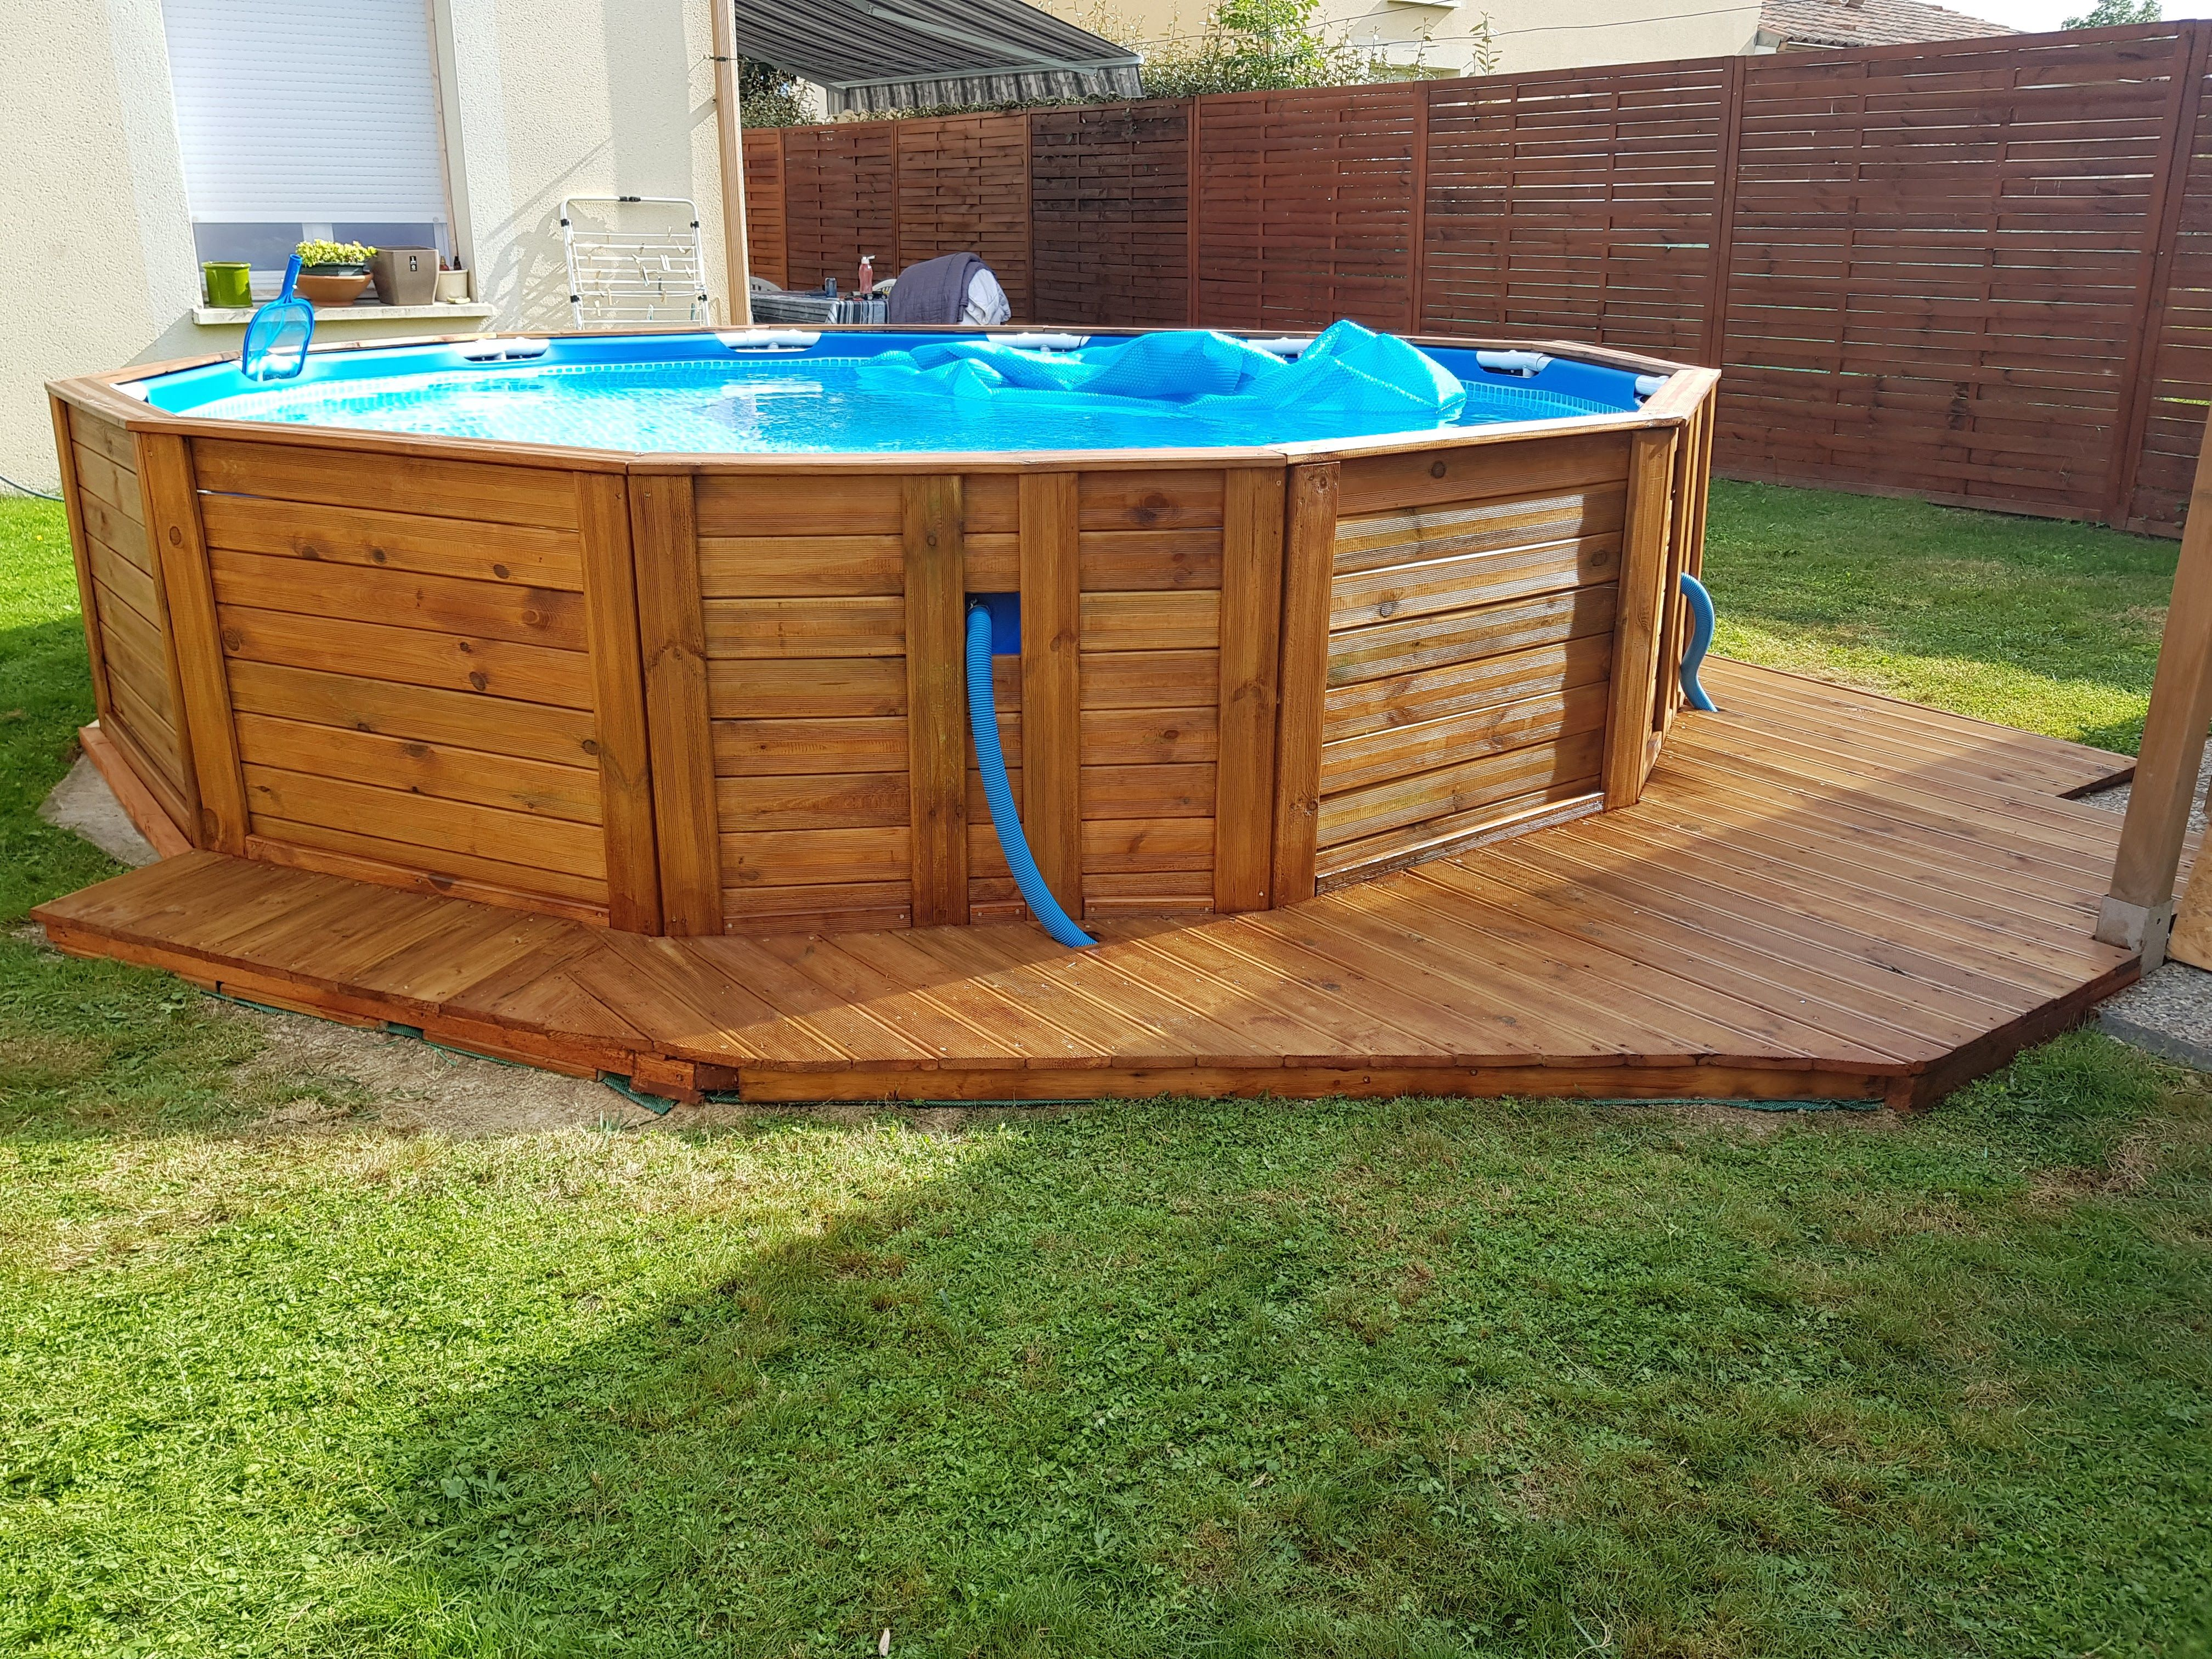 Piscine Tubulaire Bois Construction Habillage Piscine Bois Picsine Outdoor Decor